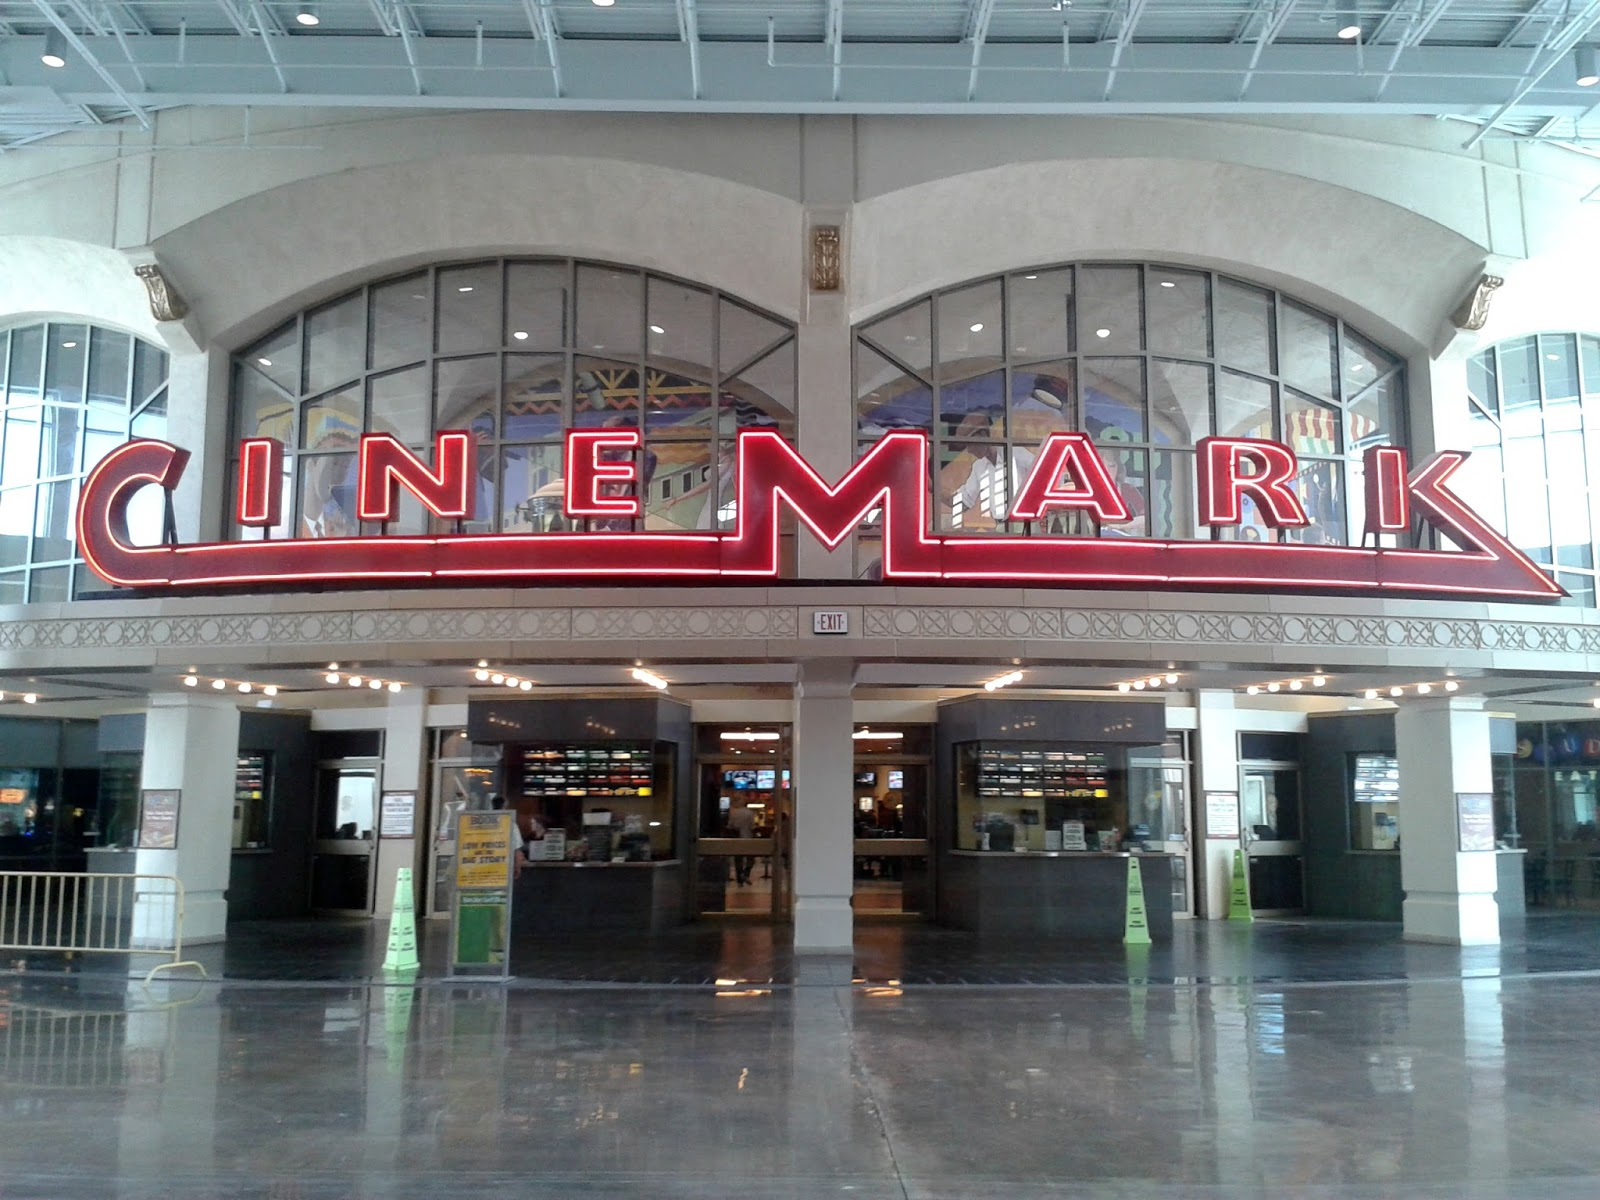 Cinemark Festival Bay Mall Orlando Florida